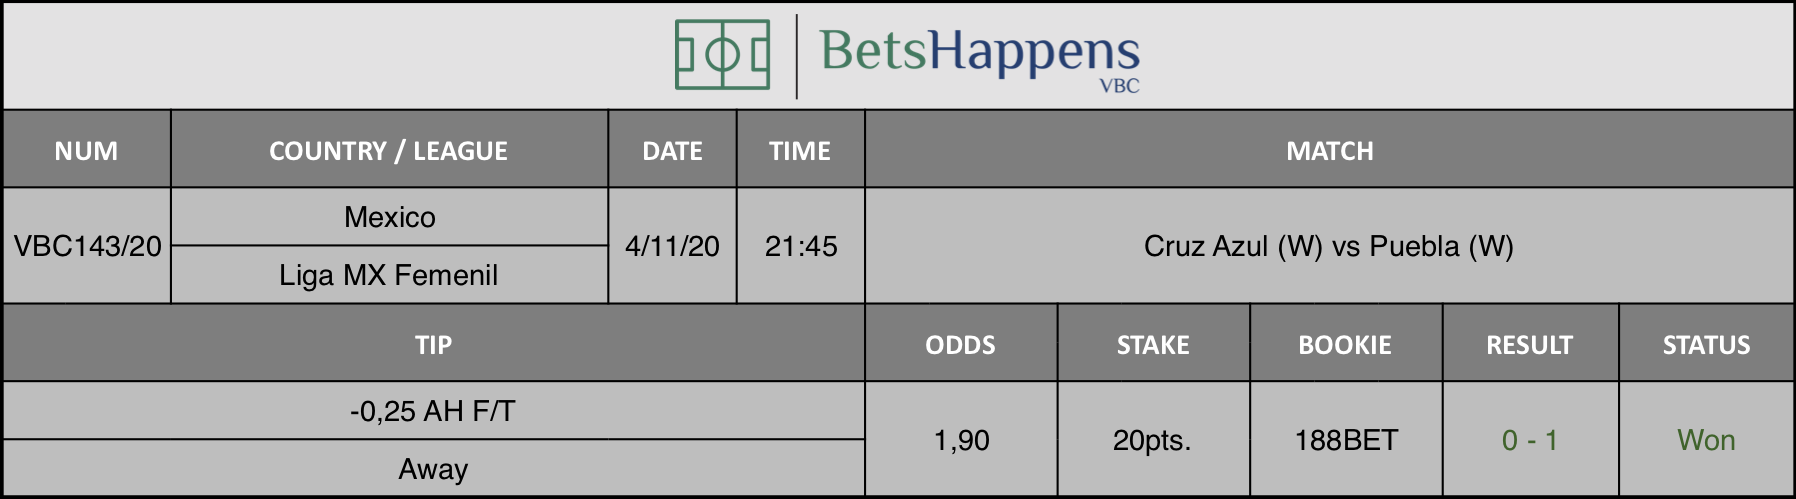 Results of our tip for the Cruz Azul (W) vs Puebla (W)  match where -0,25 AH F/T Away is recommended.